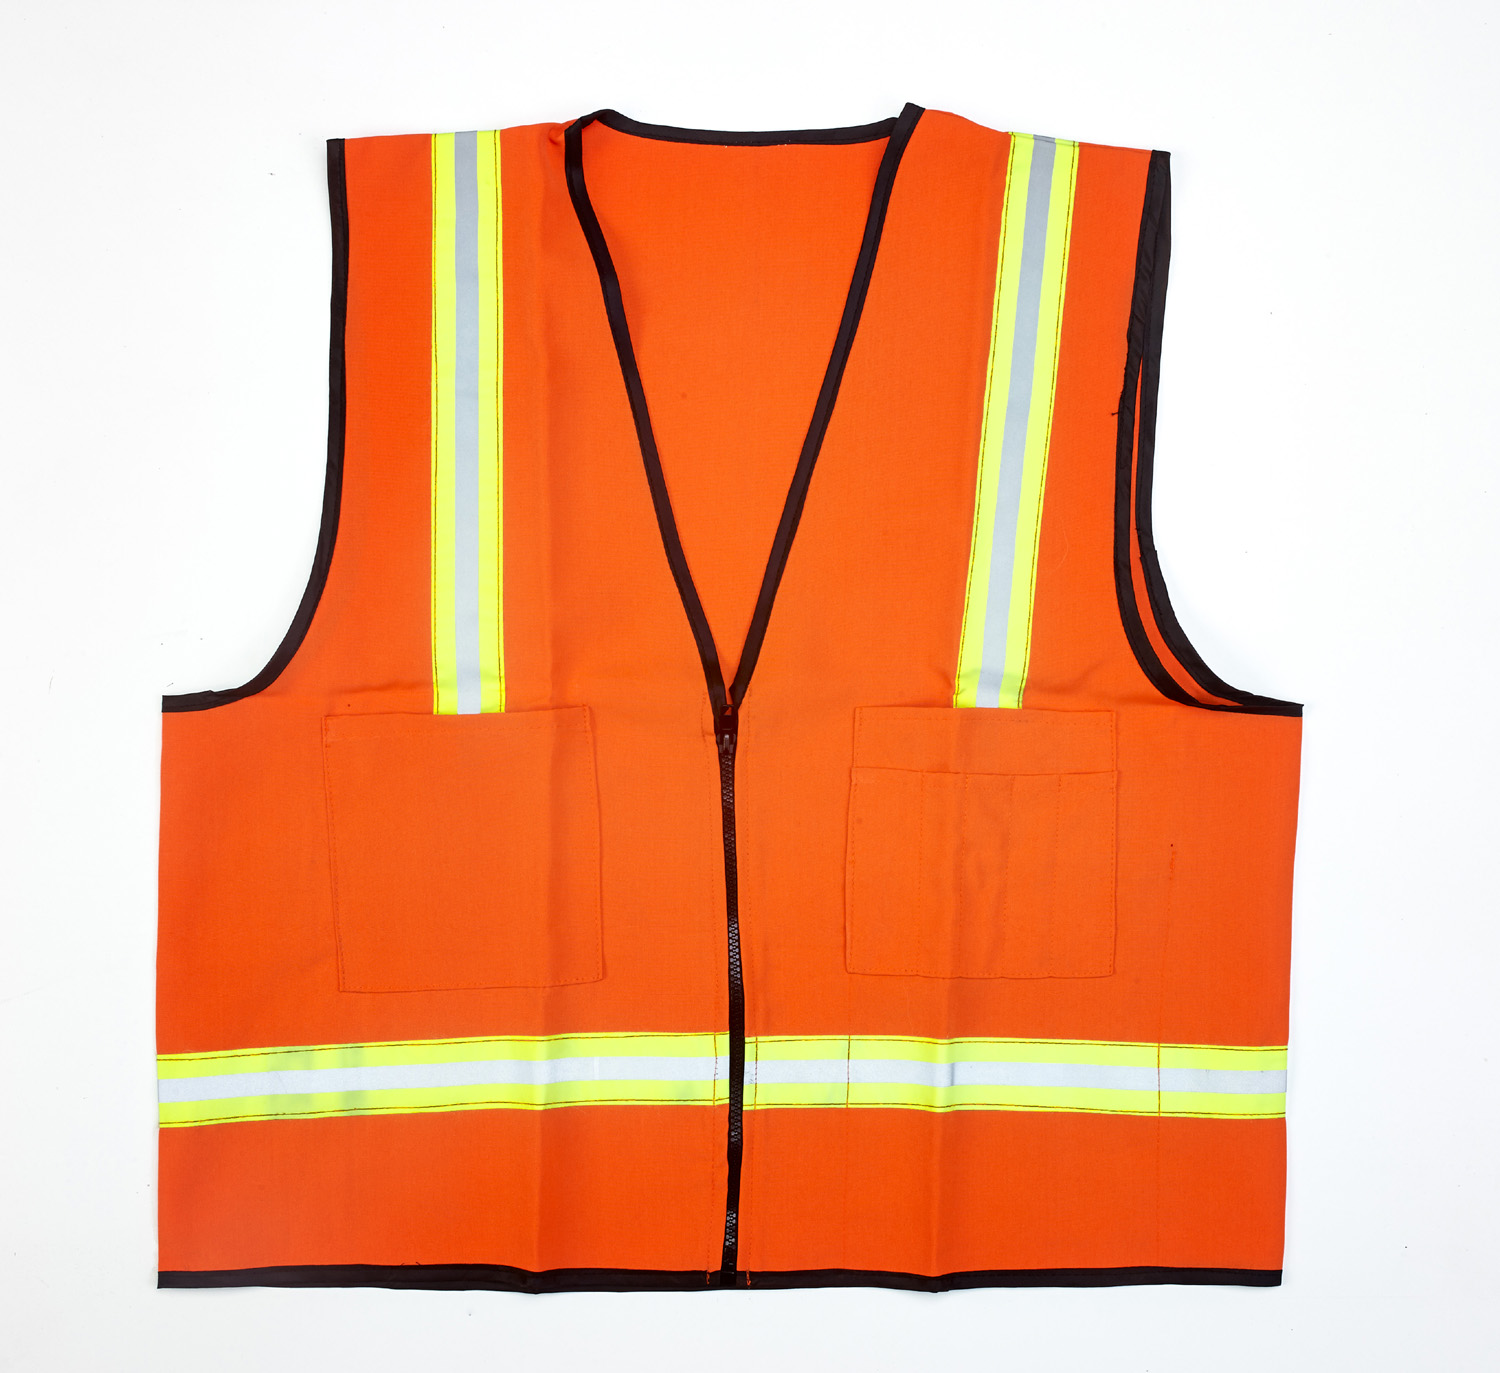 16309-138-6, High Visibility Polyester Surveyor Safety Vest with Pockets, 3X-Large, Orange, Mutual Industries